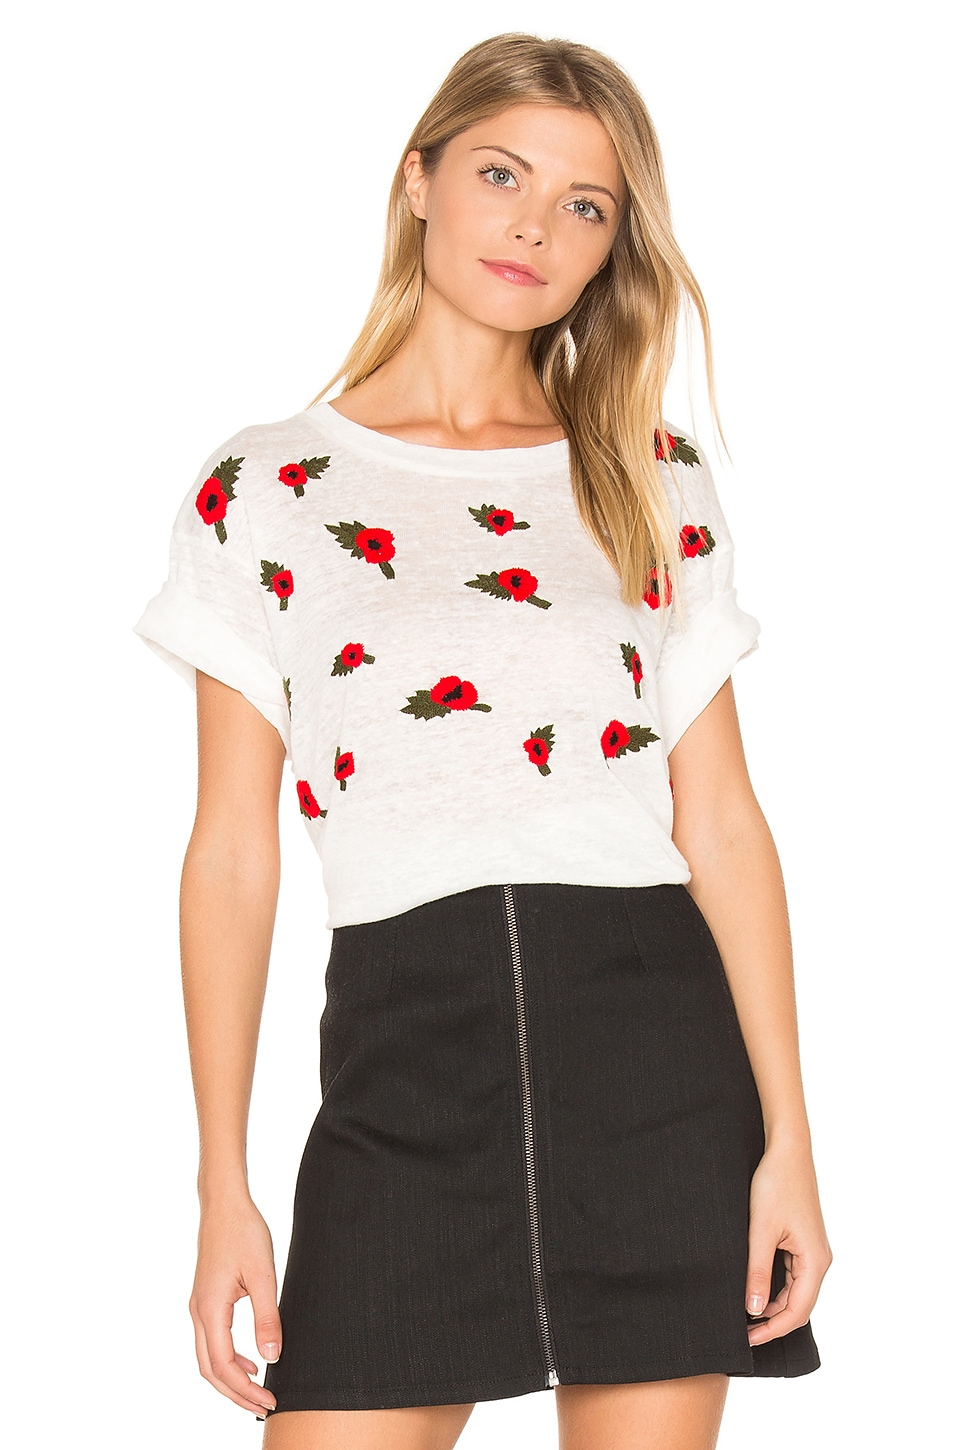 Poppies Tee by Banner Day